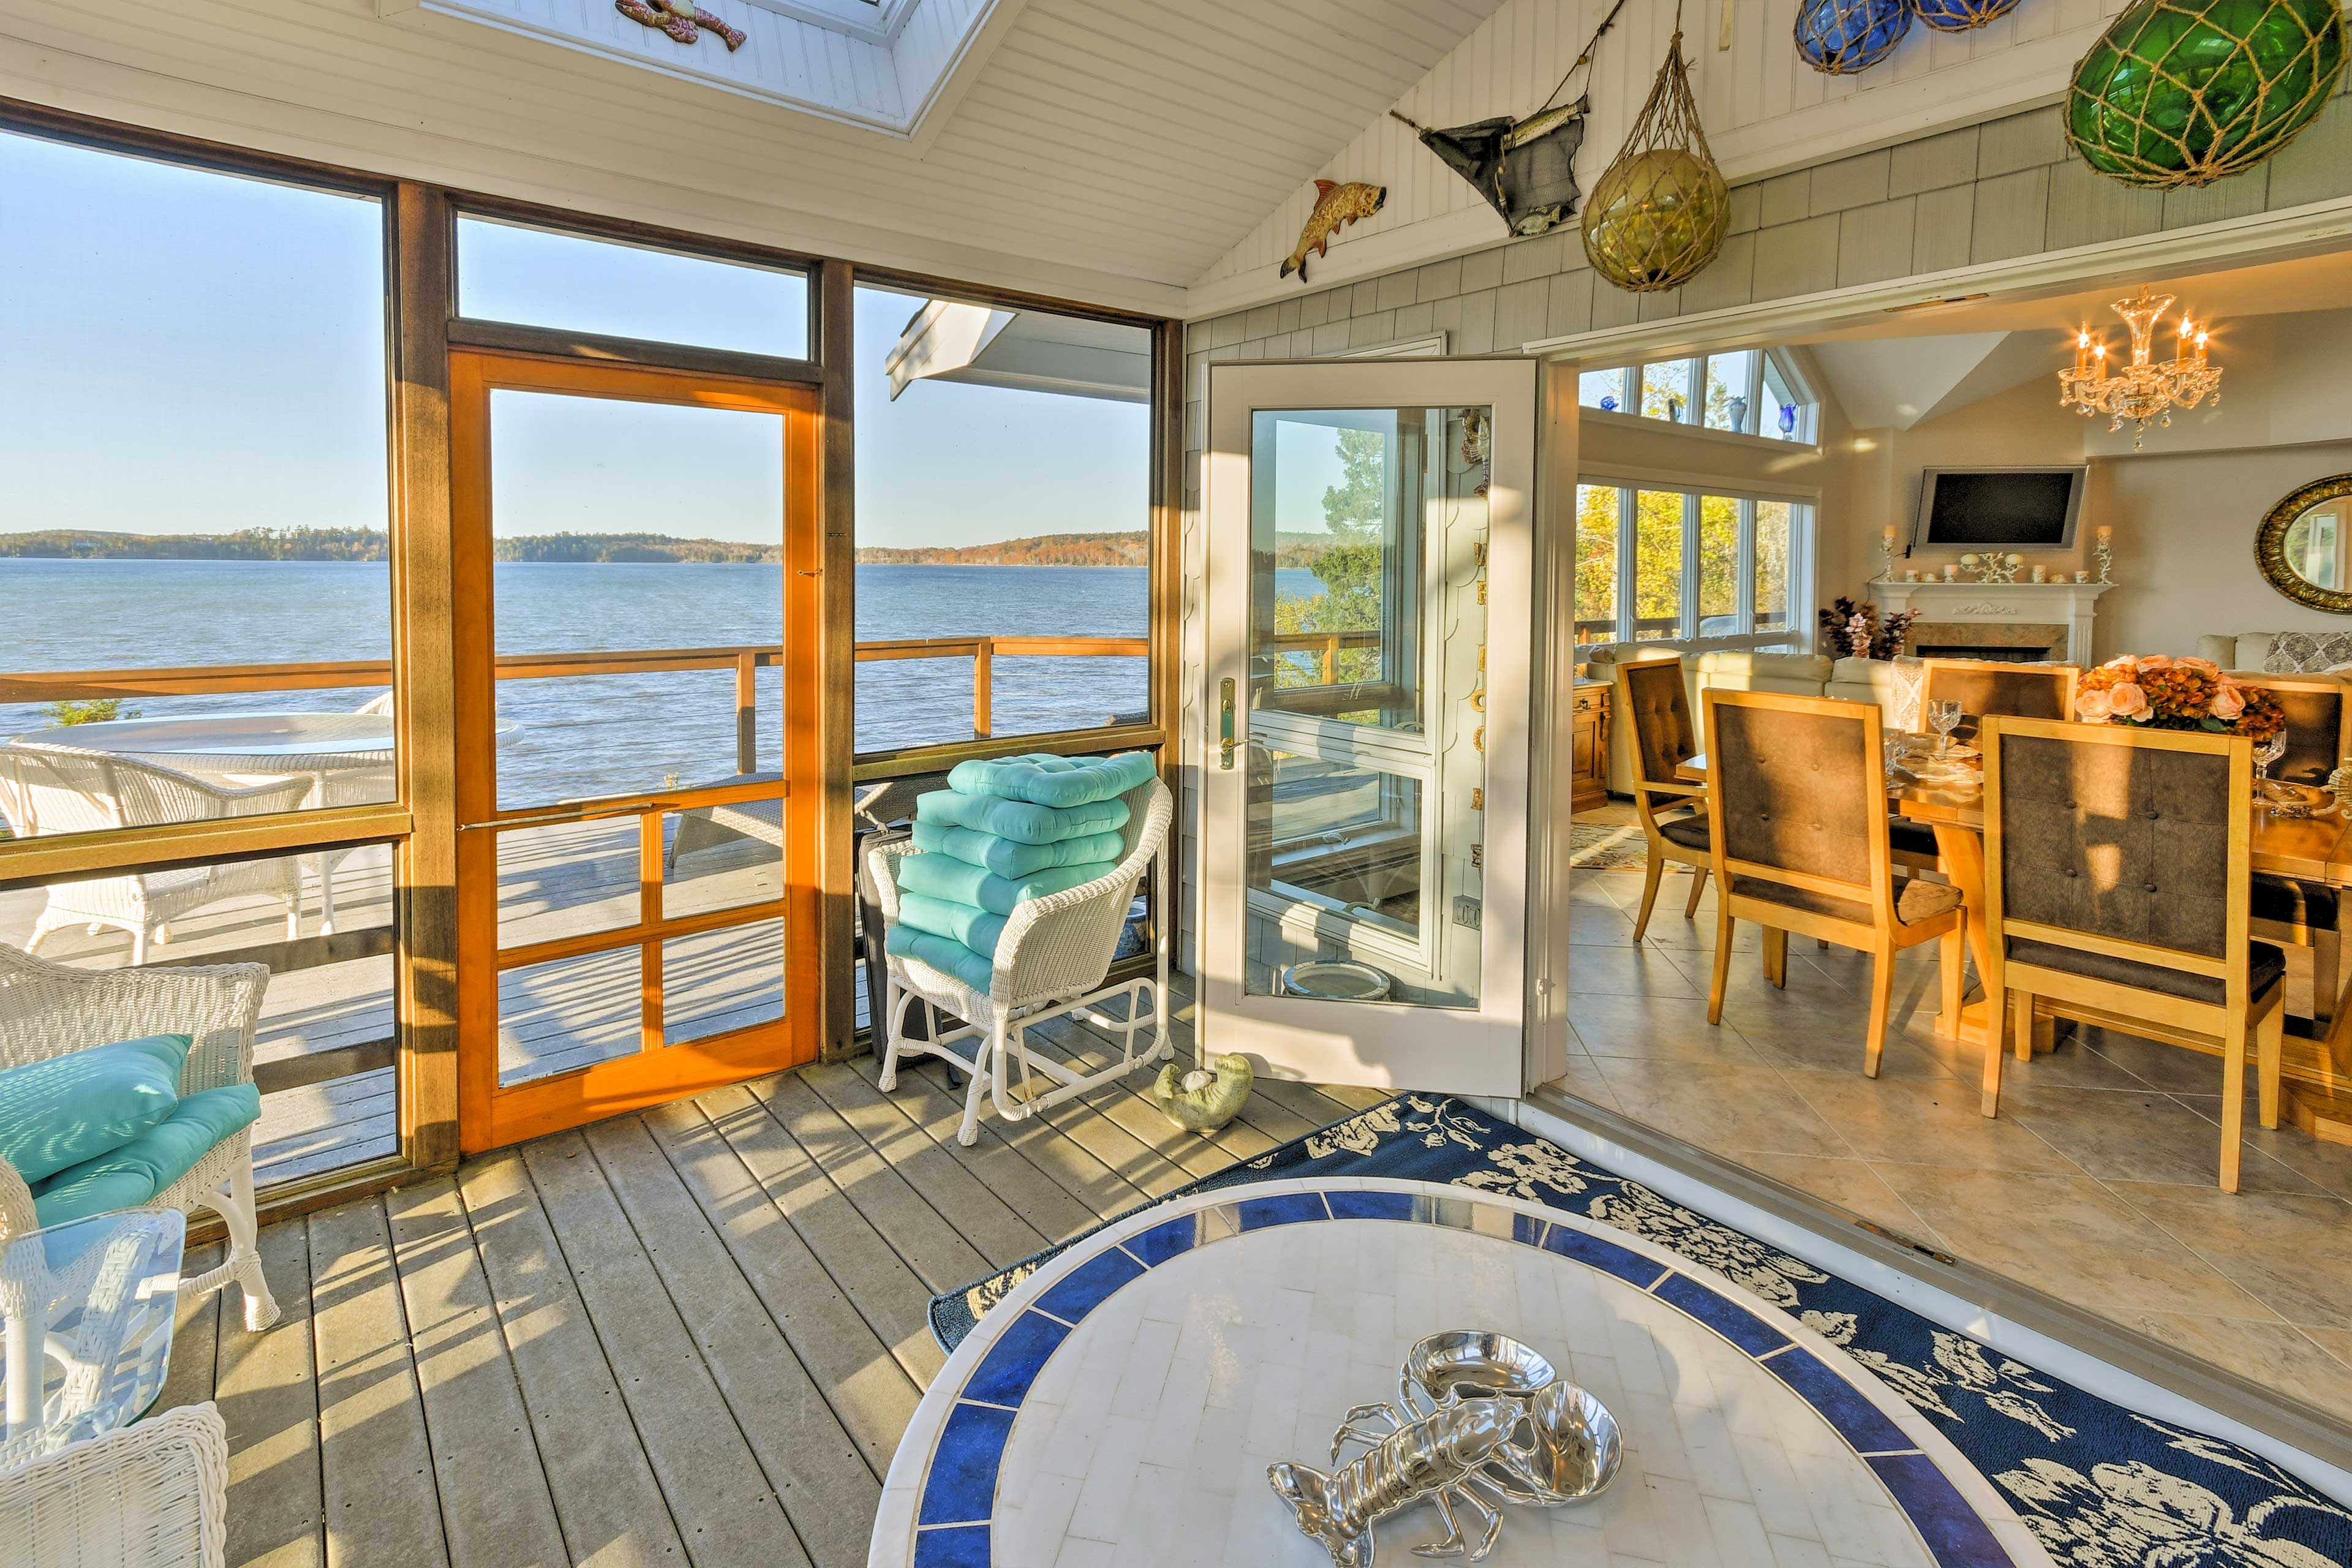 Experience the breathtaking views of Bar Harbor from the second-floor balcony.